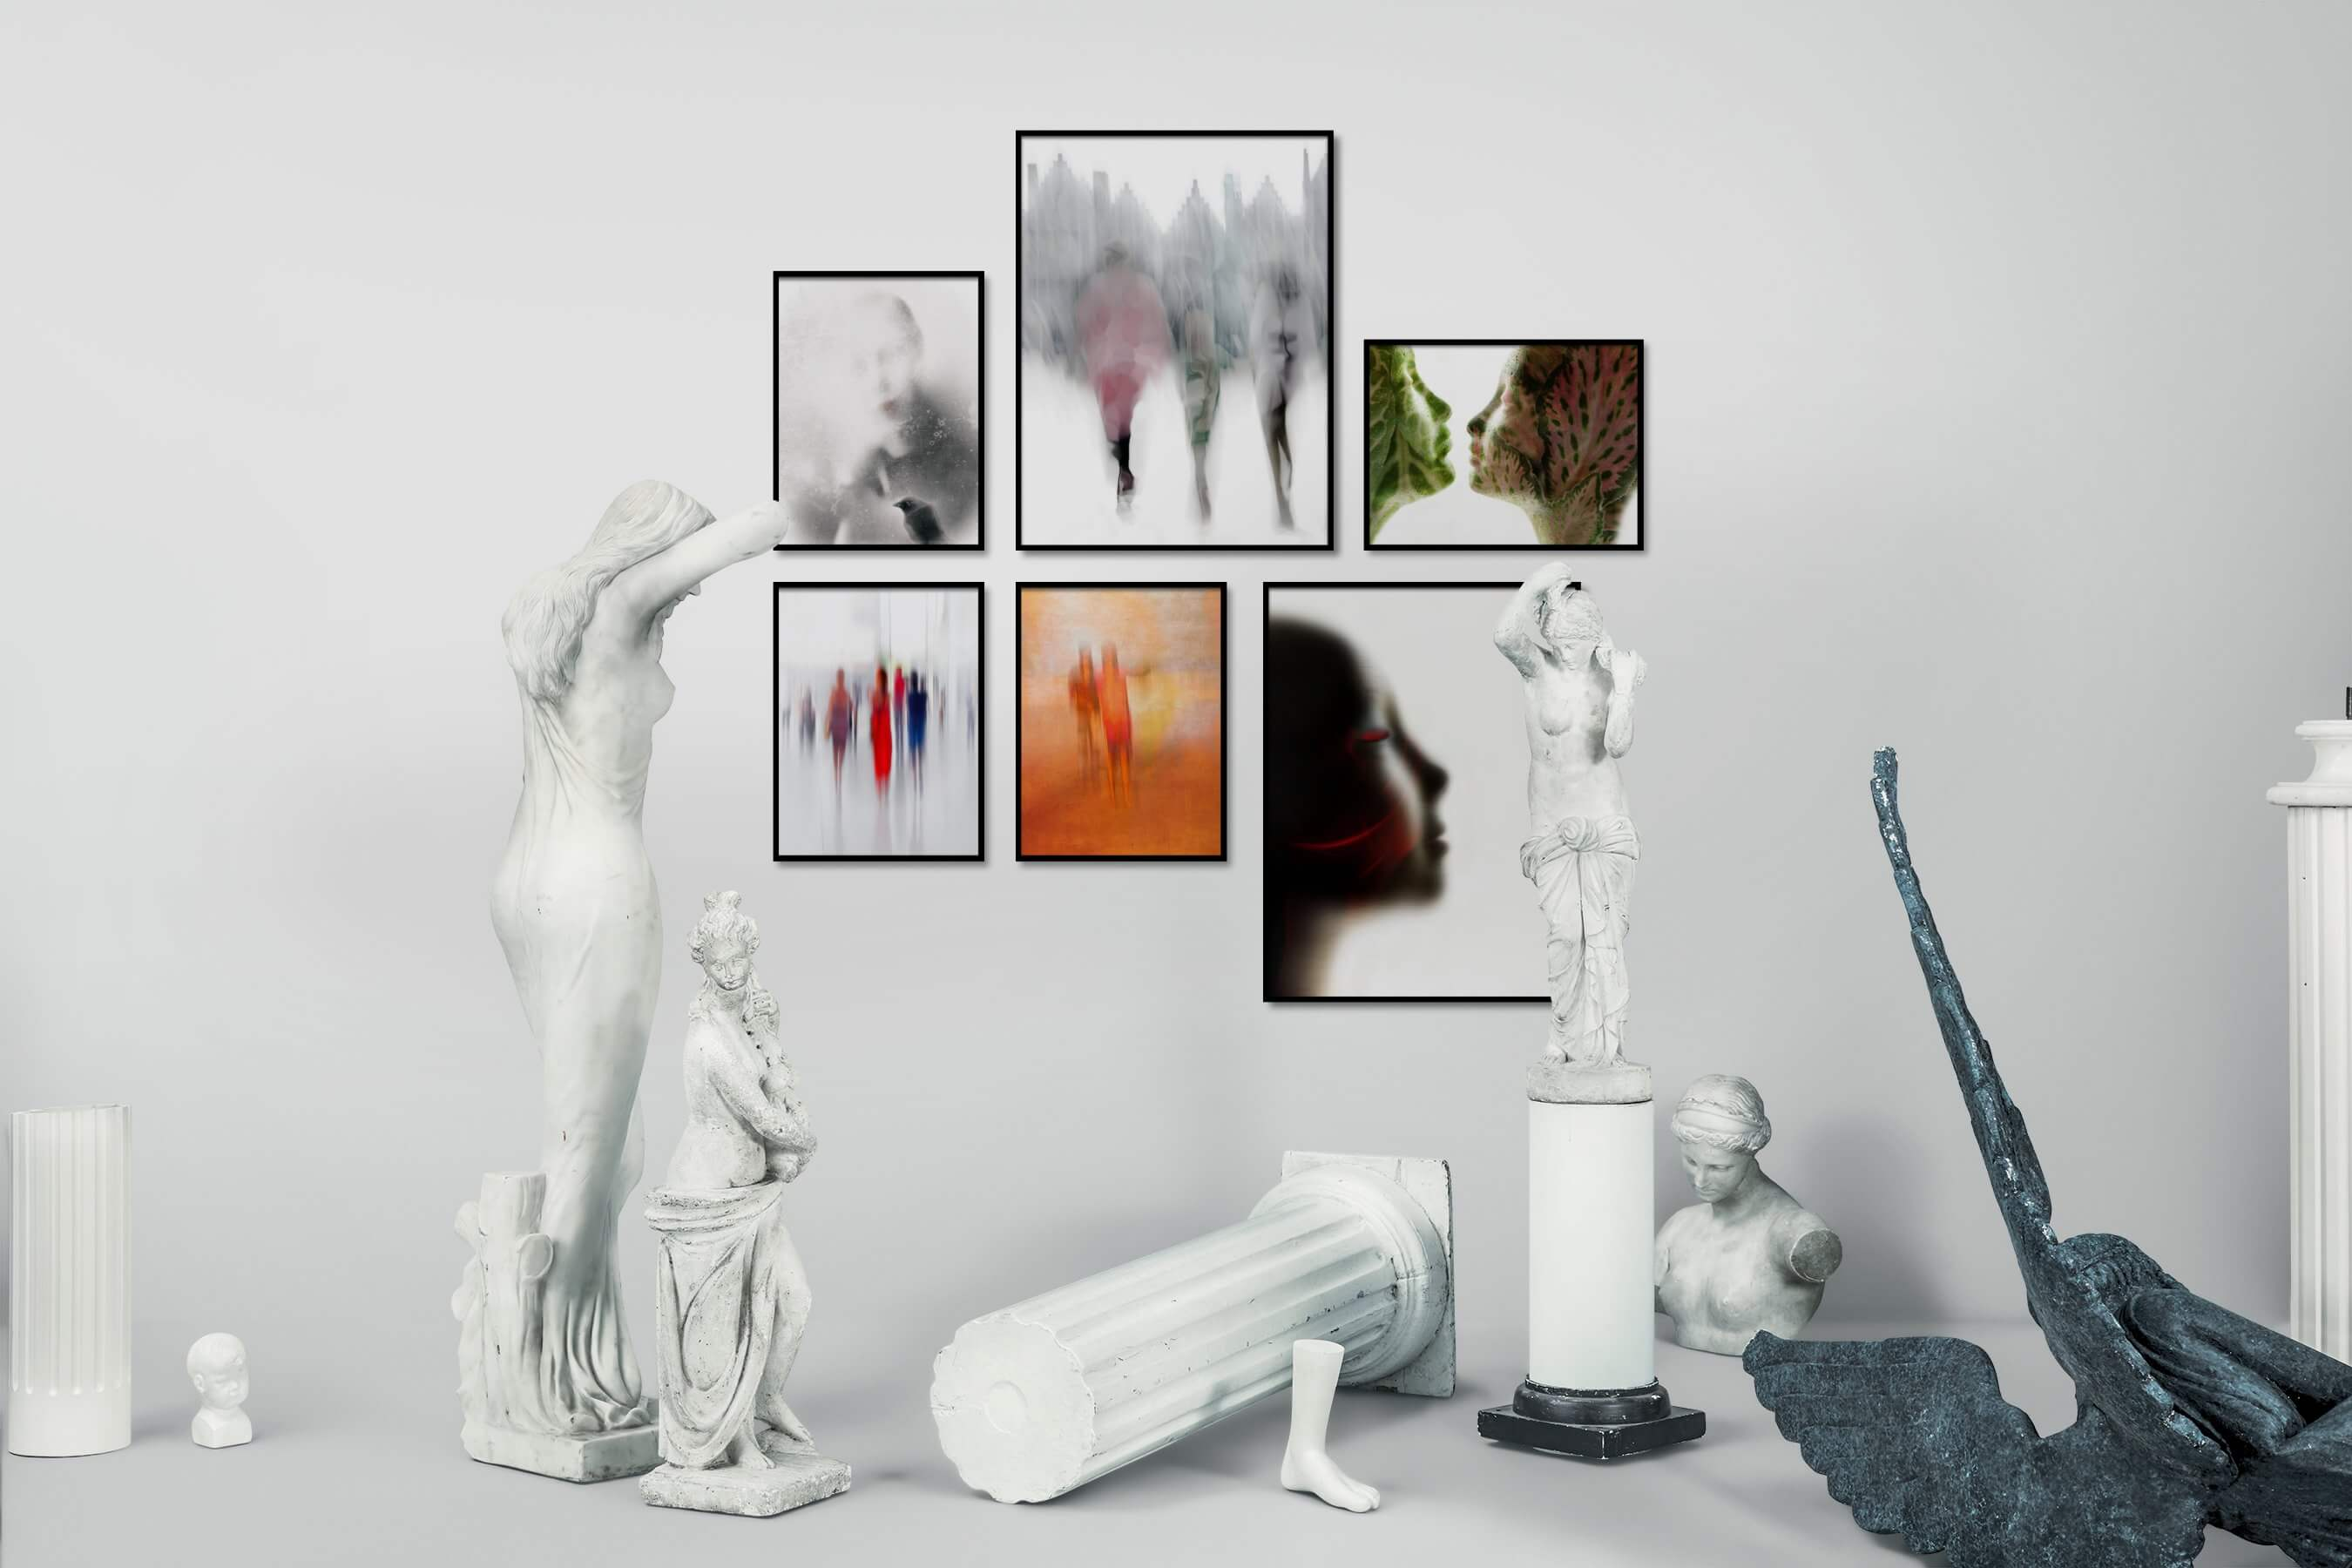 Gallery wall idea with six framed pictures arranged on a wall depicting Artsy, For the Moderate, City Life, Fashion & Beauty, Bright Tones, and For the Minimalist